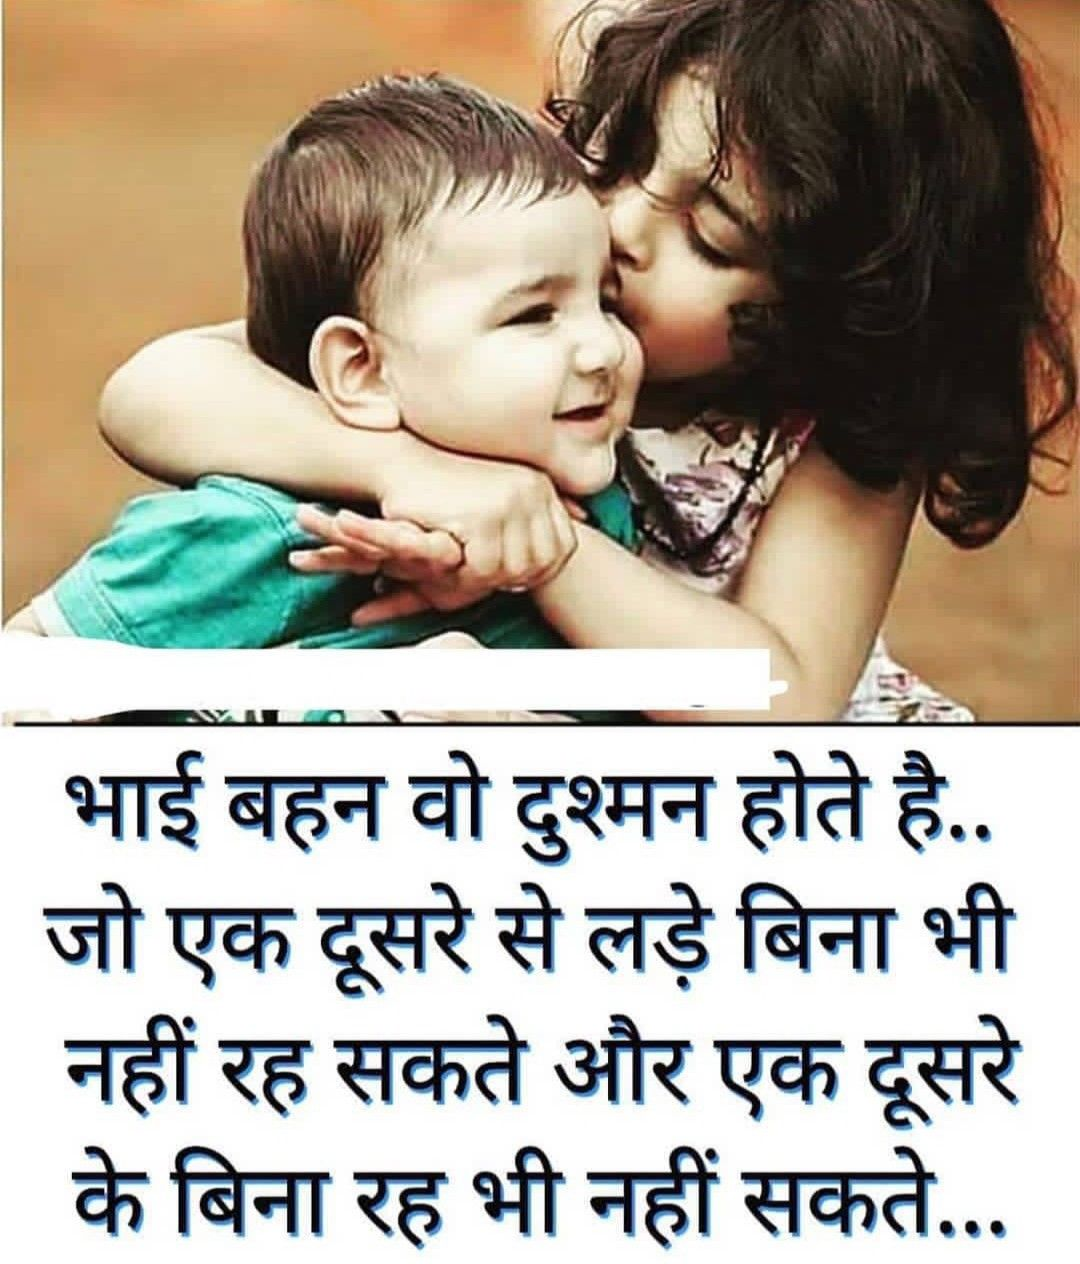 Pin By Seema Yadav On Qoutes Brother Quotes Brother Sister